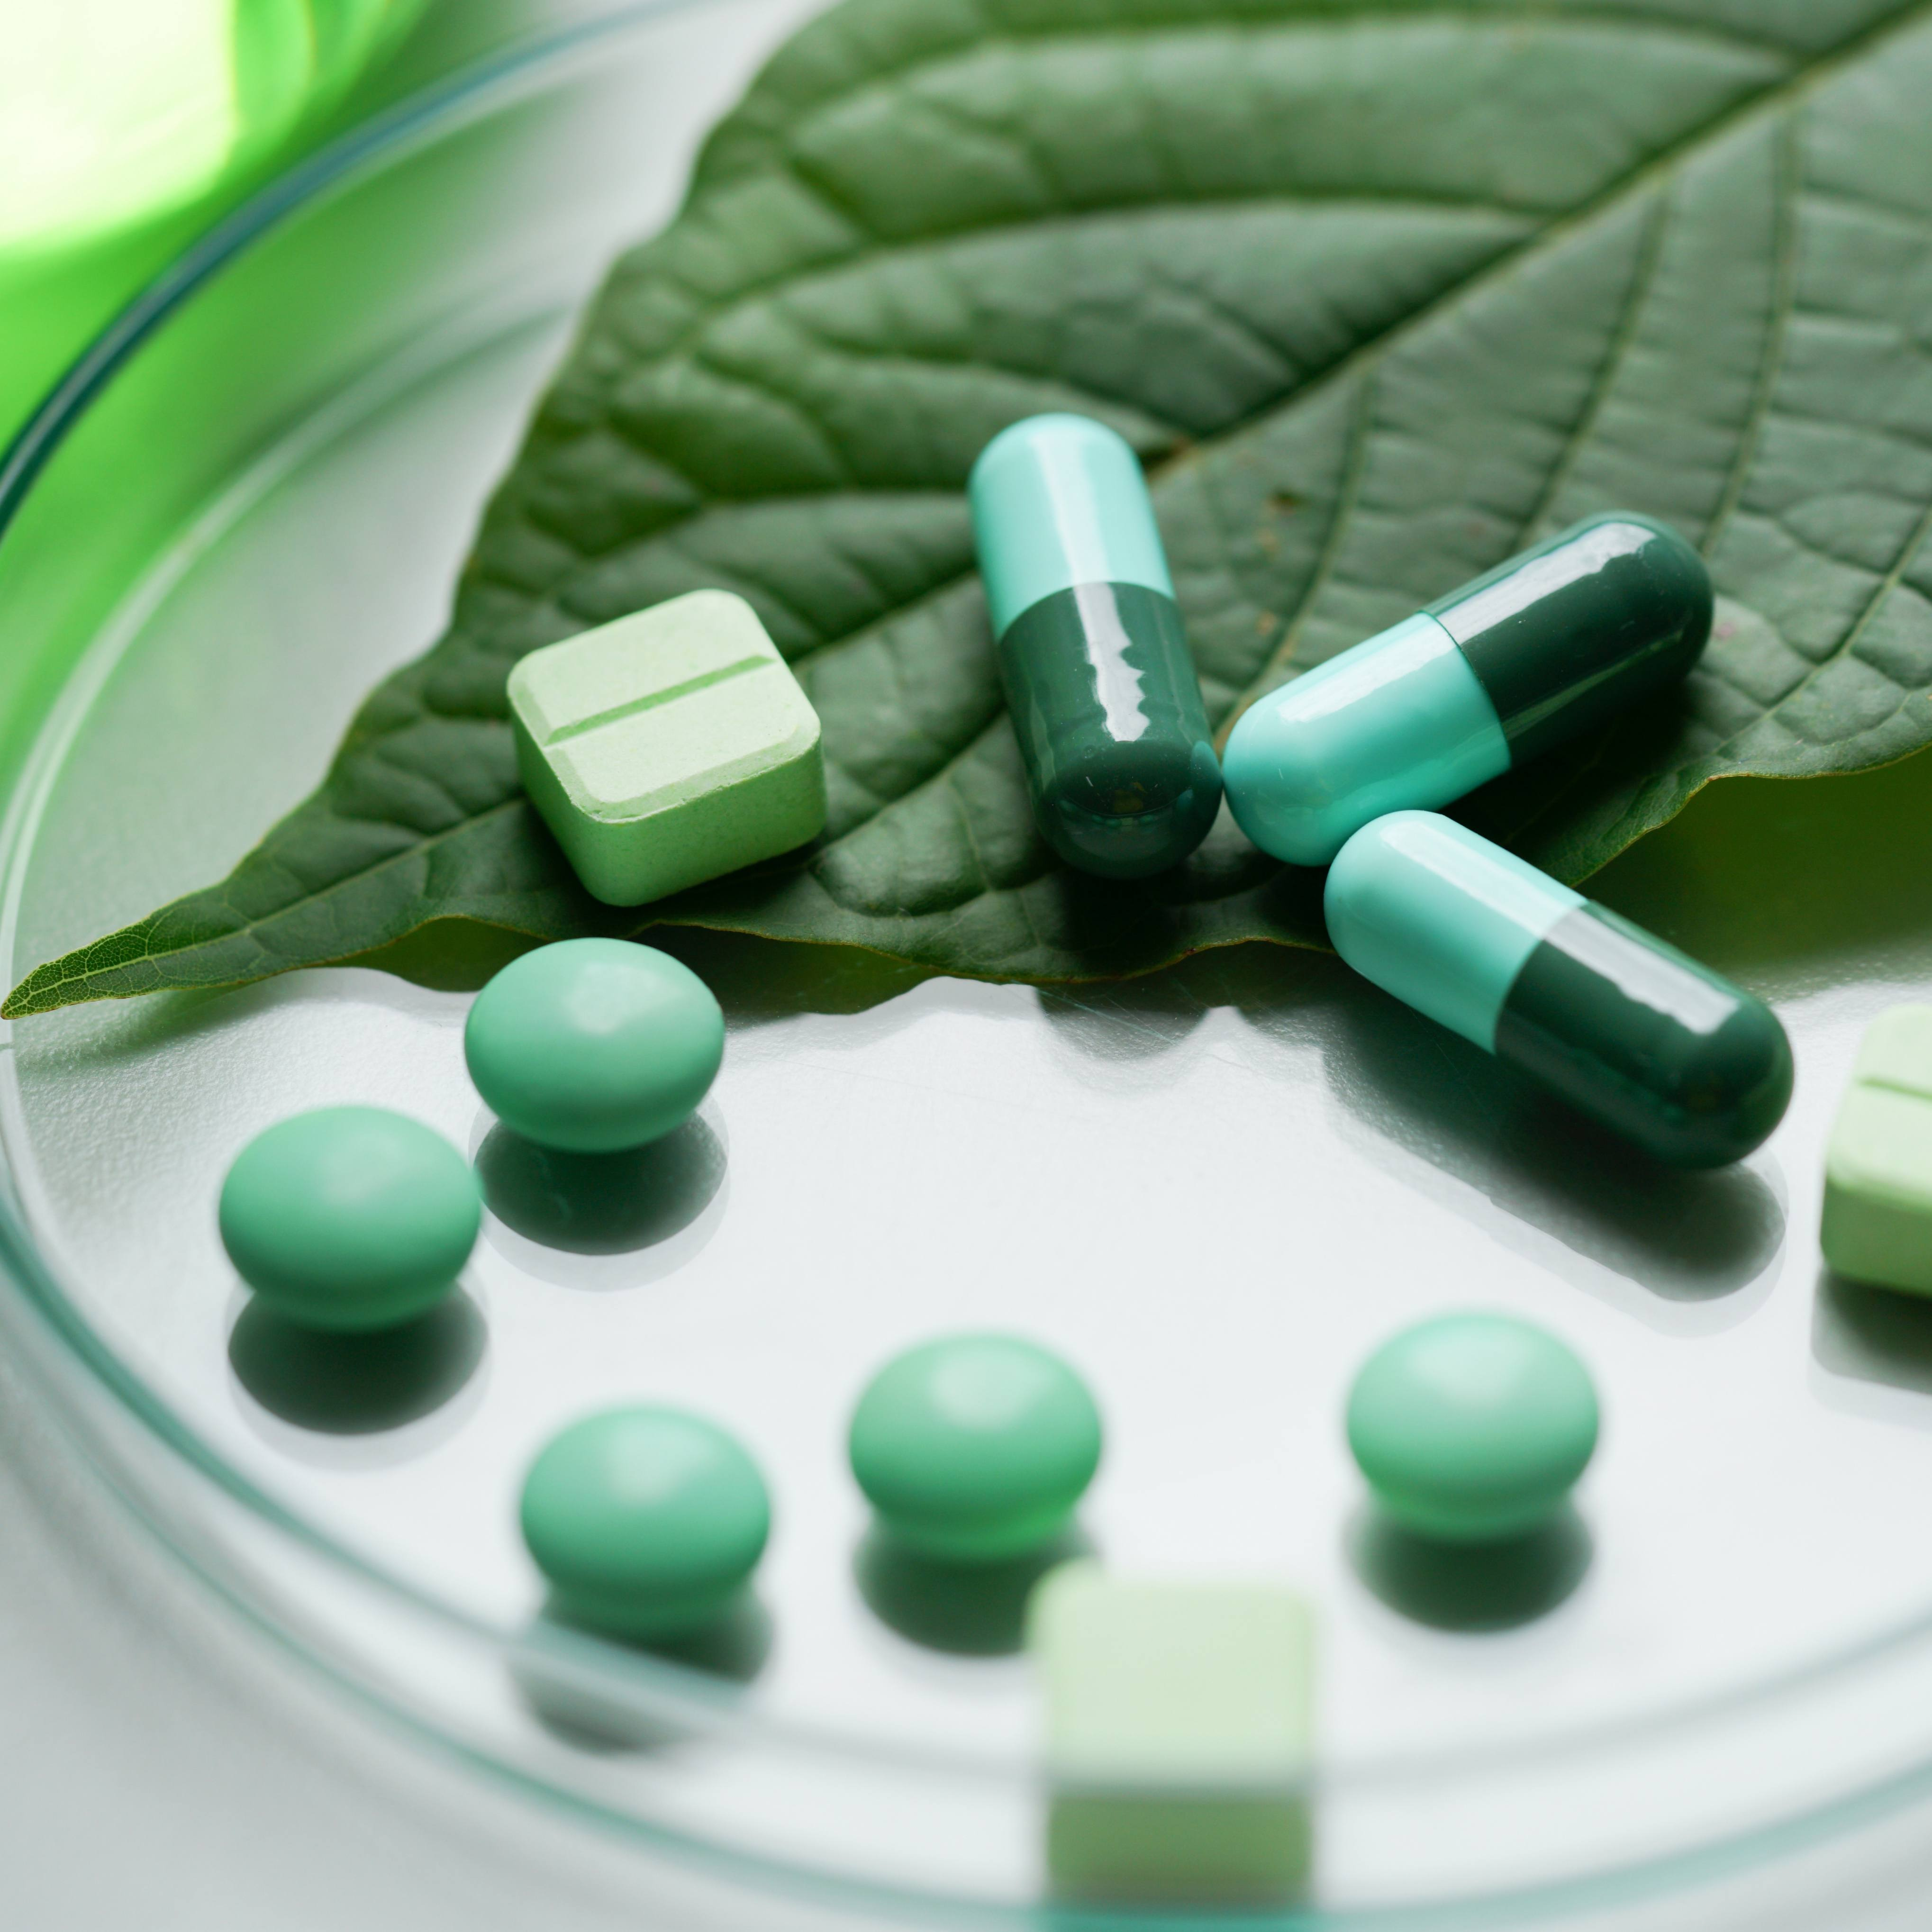 Mitragyna speciosa korth (kratom) herbal drug plant with pain pills in the laboratory research